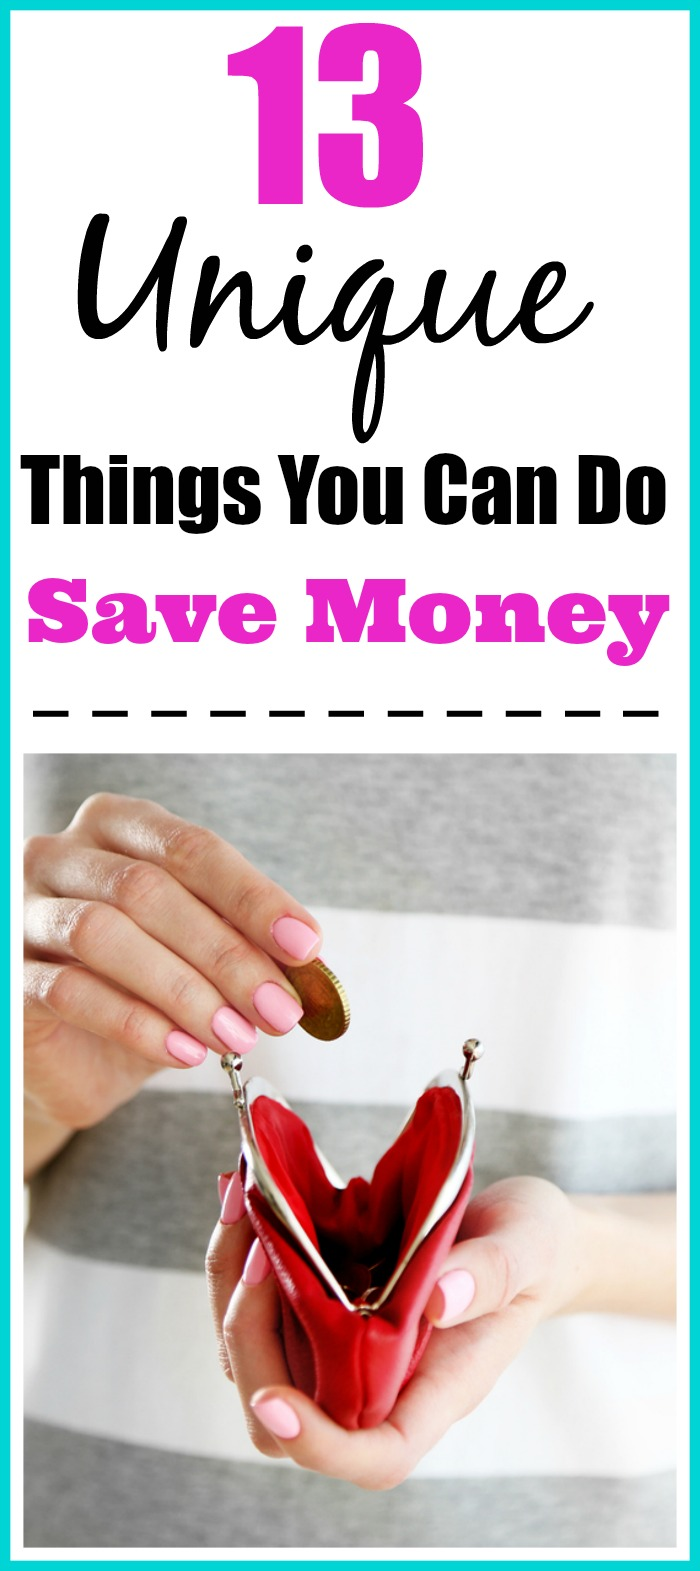 13 Unique Things You Can Do To Save Money - Are you tired of being in debt? Maybe you just want to save some money for something special. Well, there are many ways you can save a bit of cash, while still enjoying life that may not be your ordinary way to save money! Here are 13 unique ways you can start saving money right away: